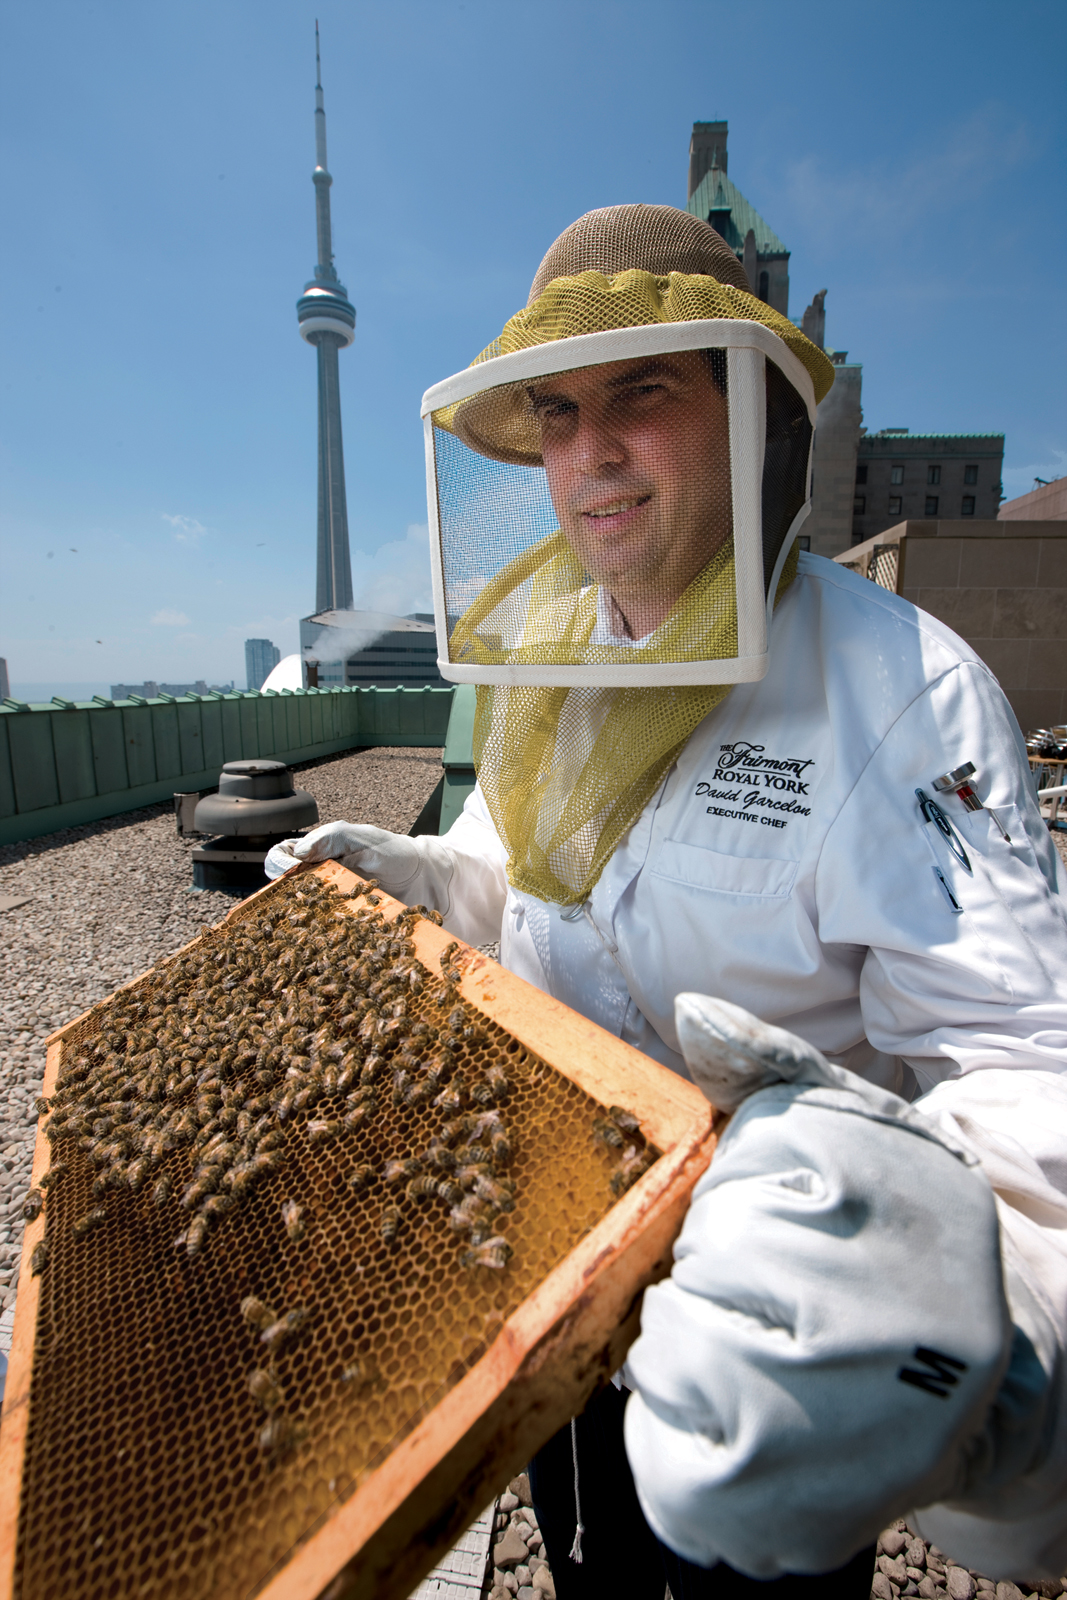 Fairmont Royal York Hotel executive chef David Garcelon takes instruction from beekeepers on the handling of the three new hives on the hotel's roof, just beside the roof-top herb garden. Photograph by Norm Betts.